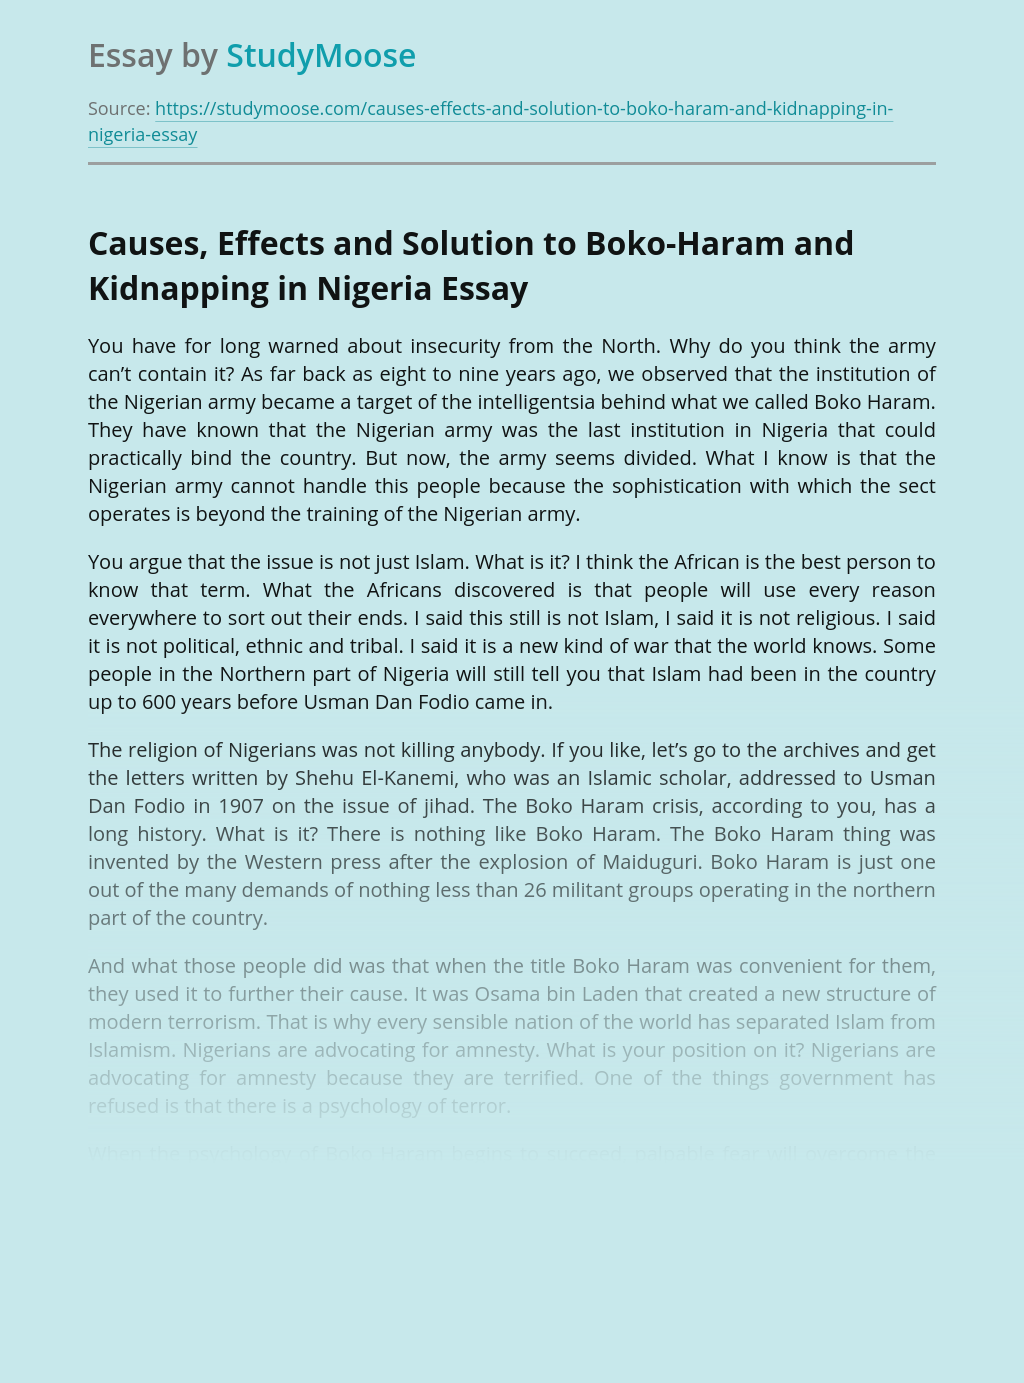 Causes, Effects and Solution to Boko-Haram and Kidnapping in Nigeria